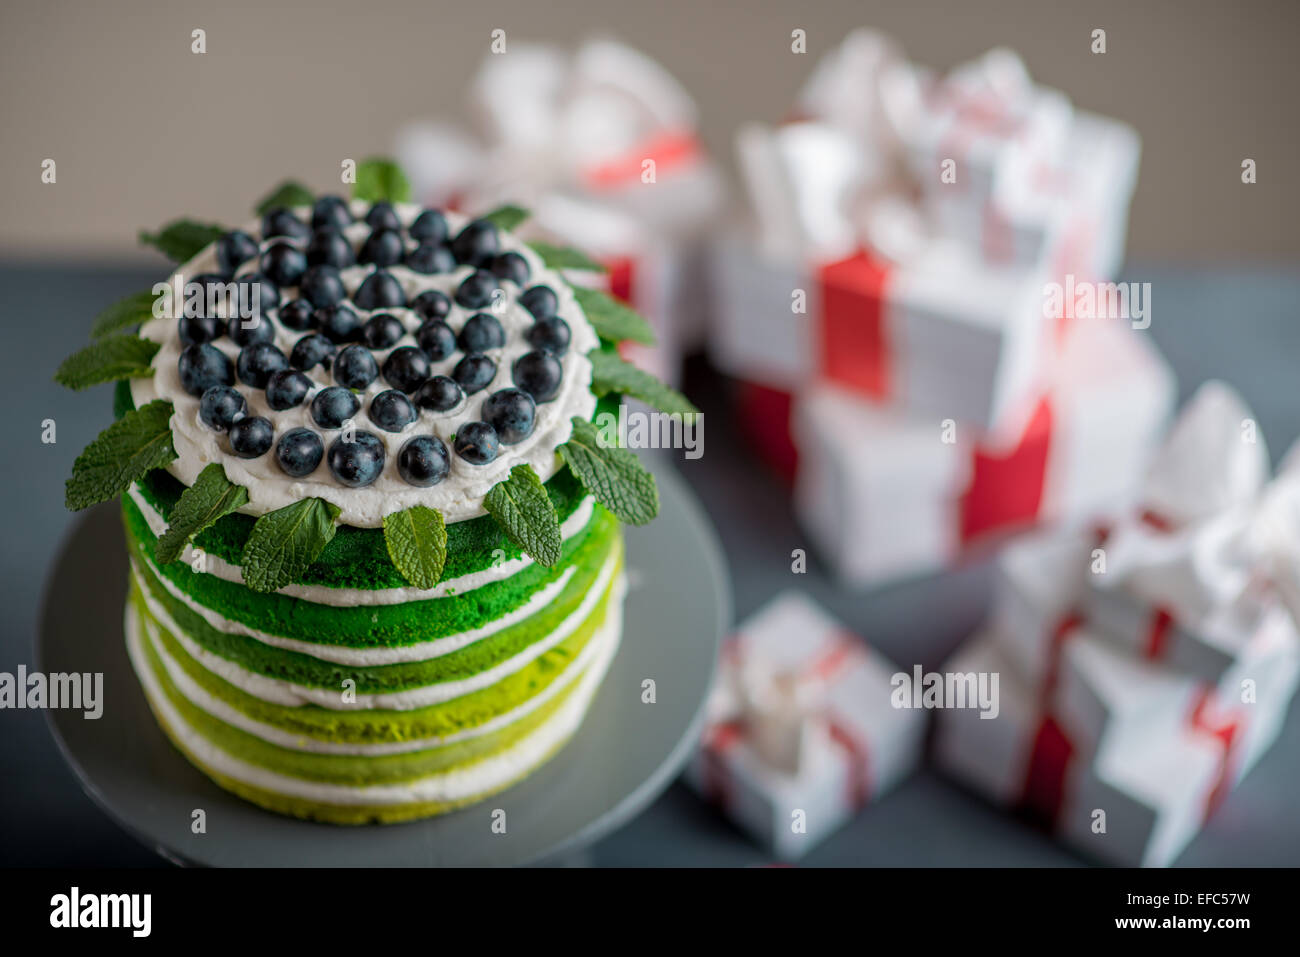 Nice sponge happy birthday cake with mascarpone and grapes with on the cake stand with gift boxes on festive light - Stock Image